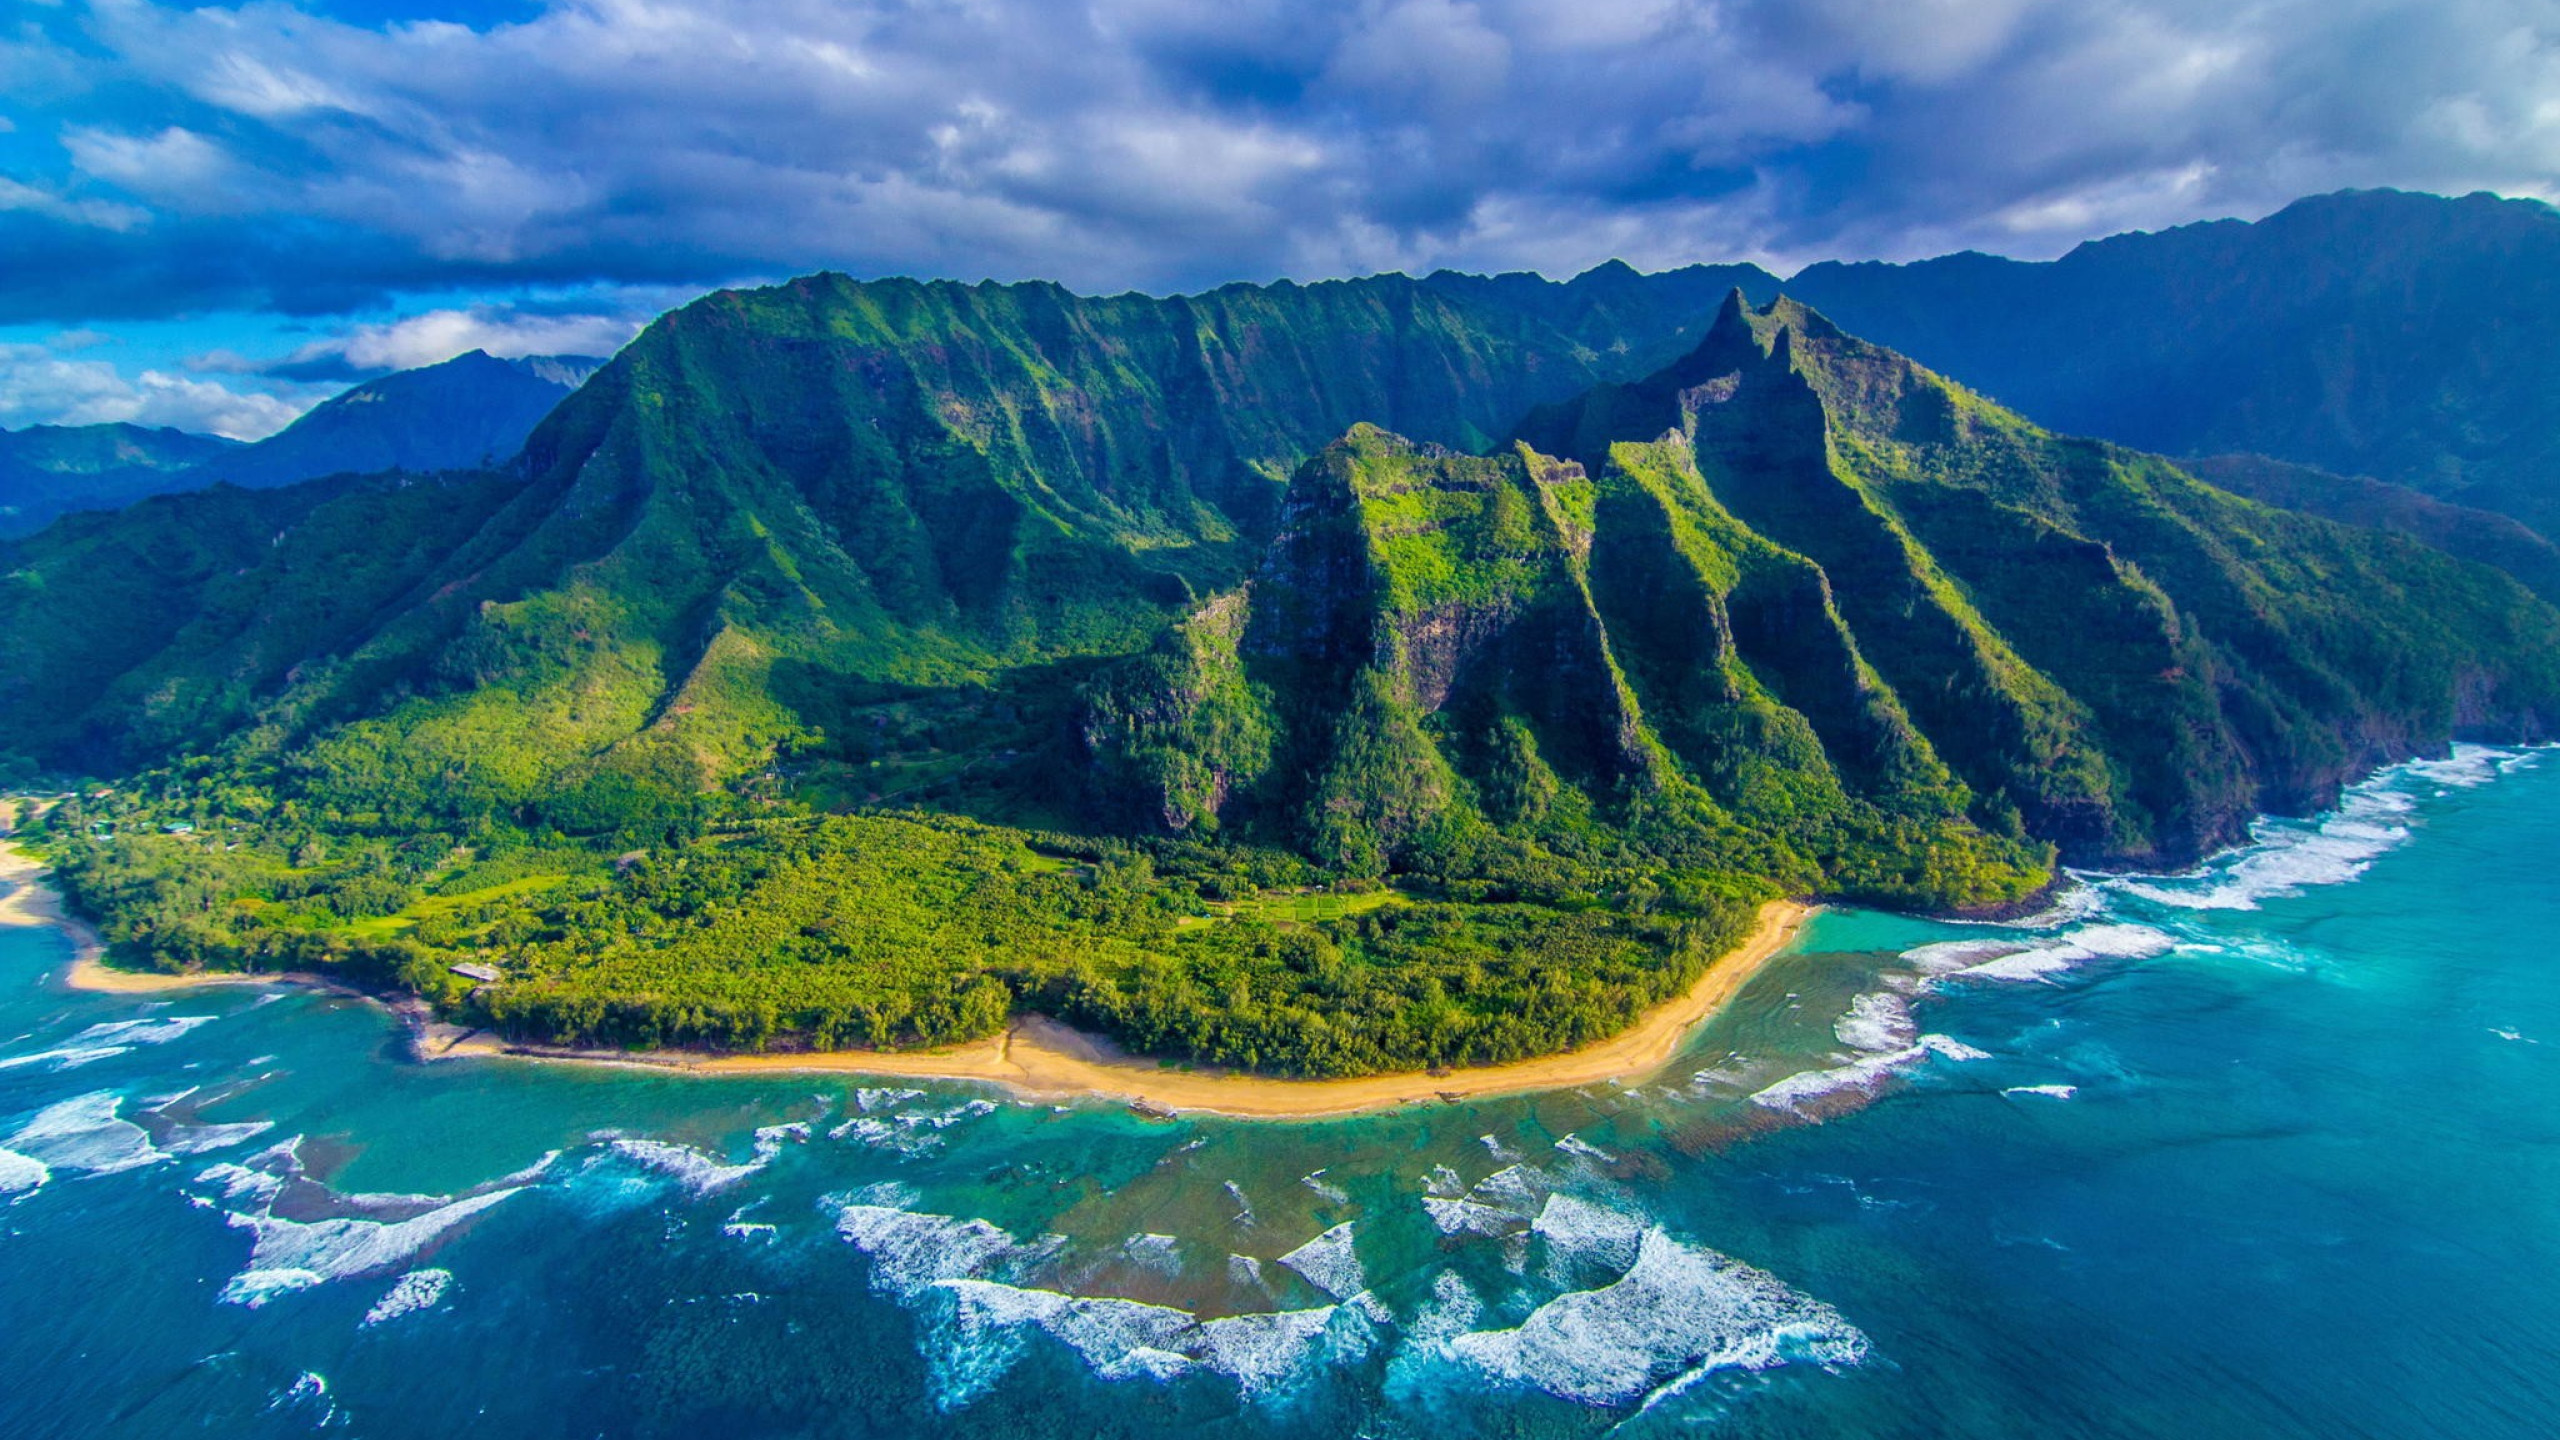 2560x1440 Hawaii Wallpaper Picture ...